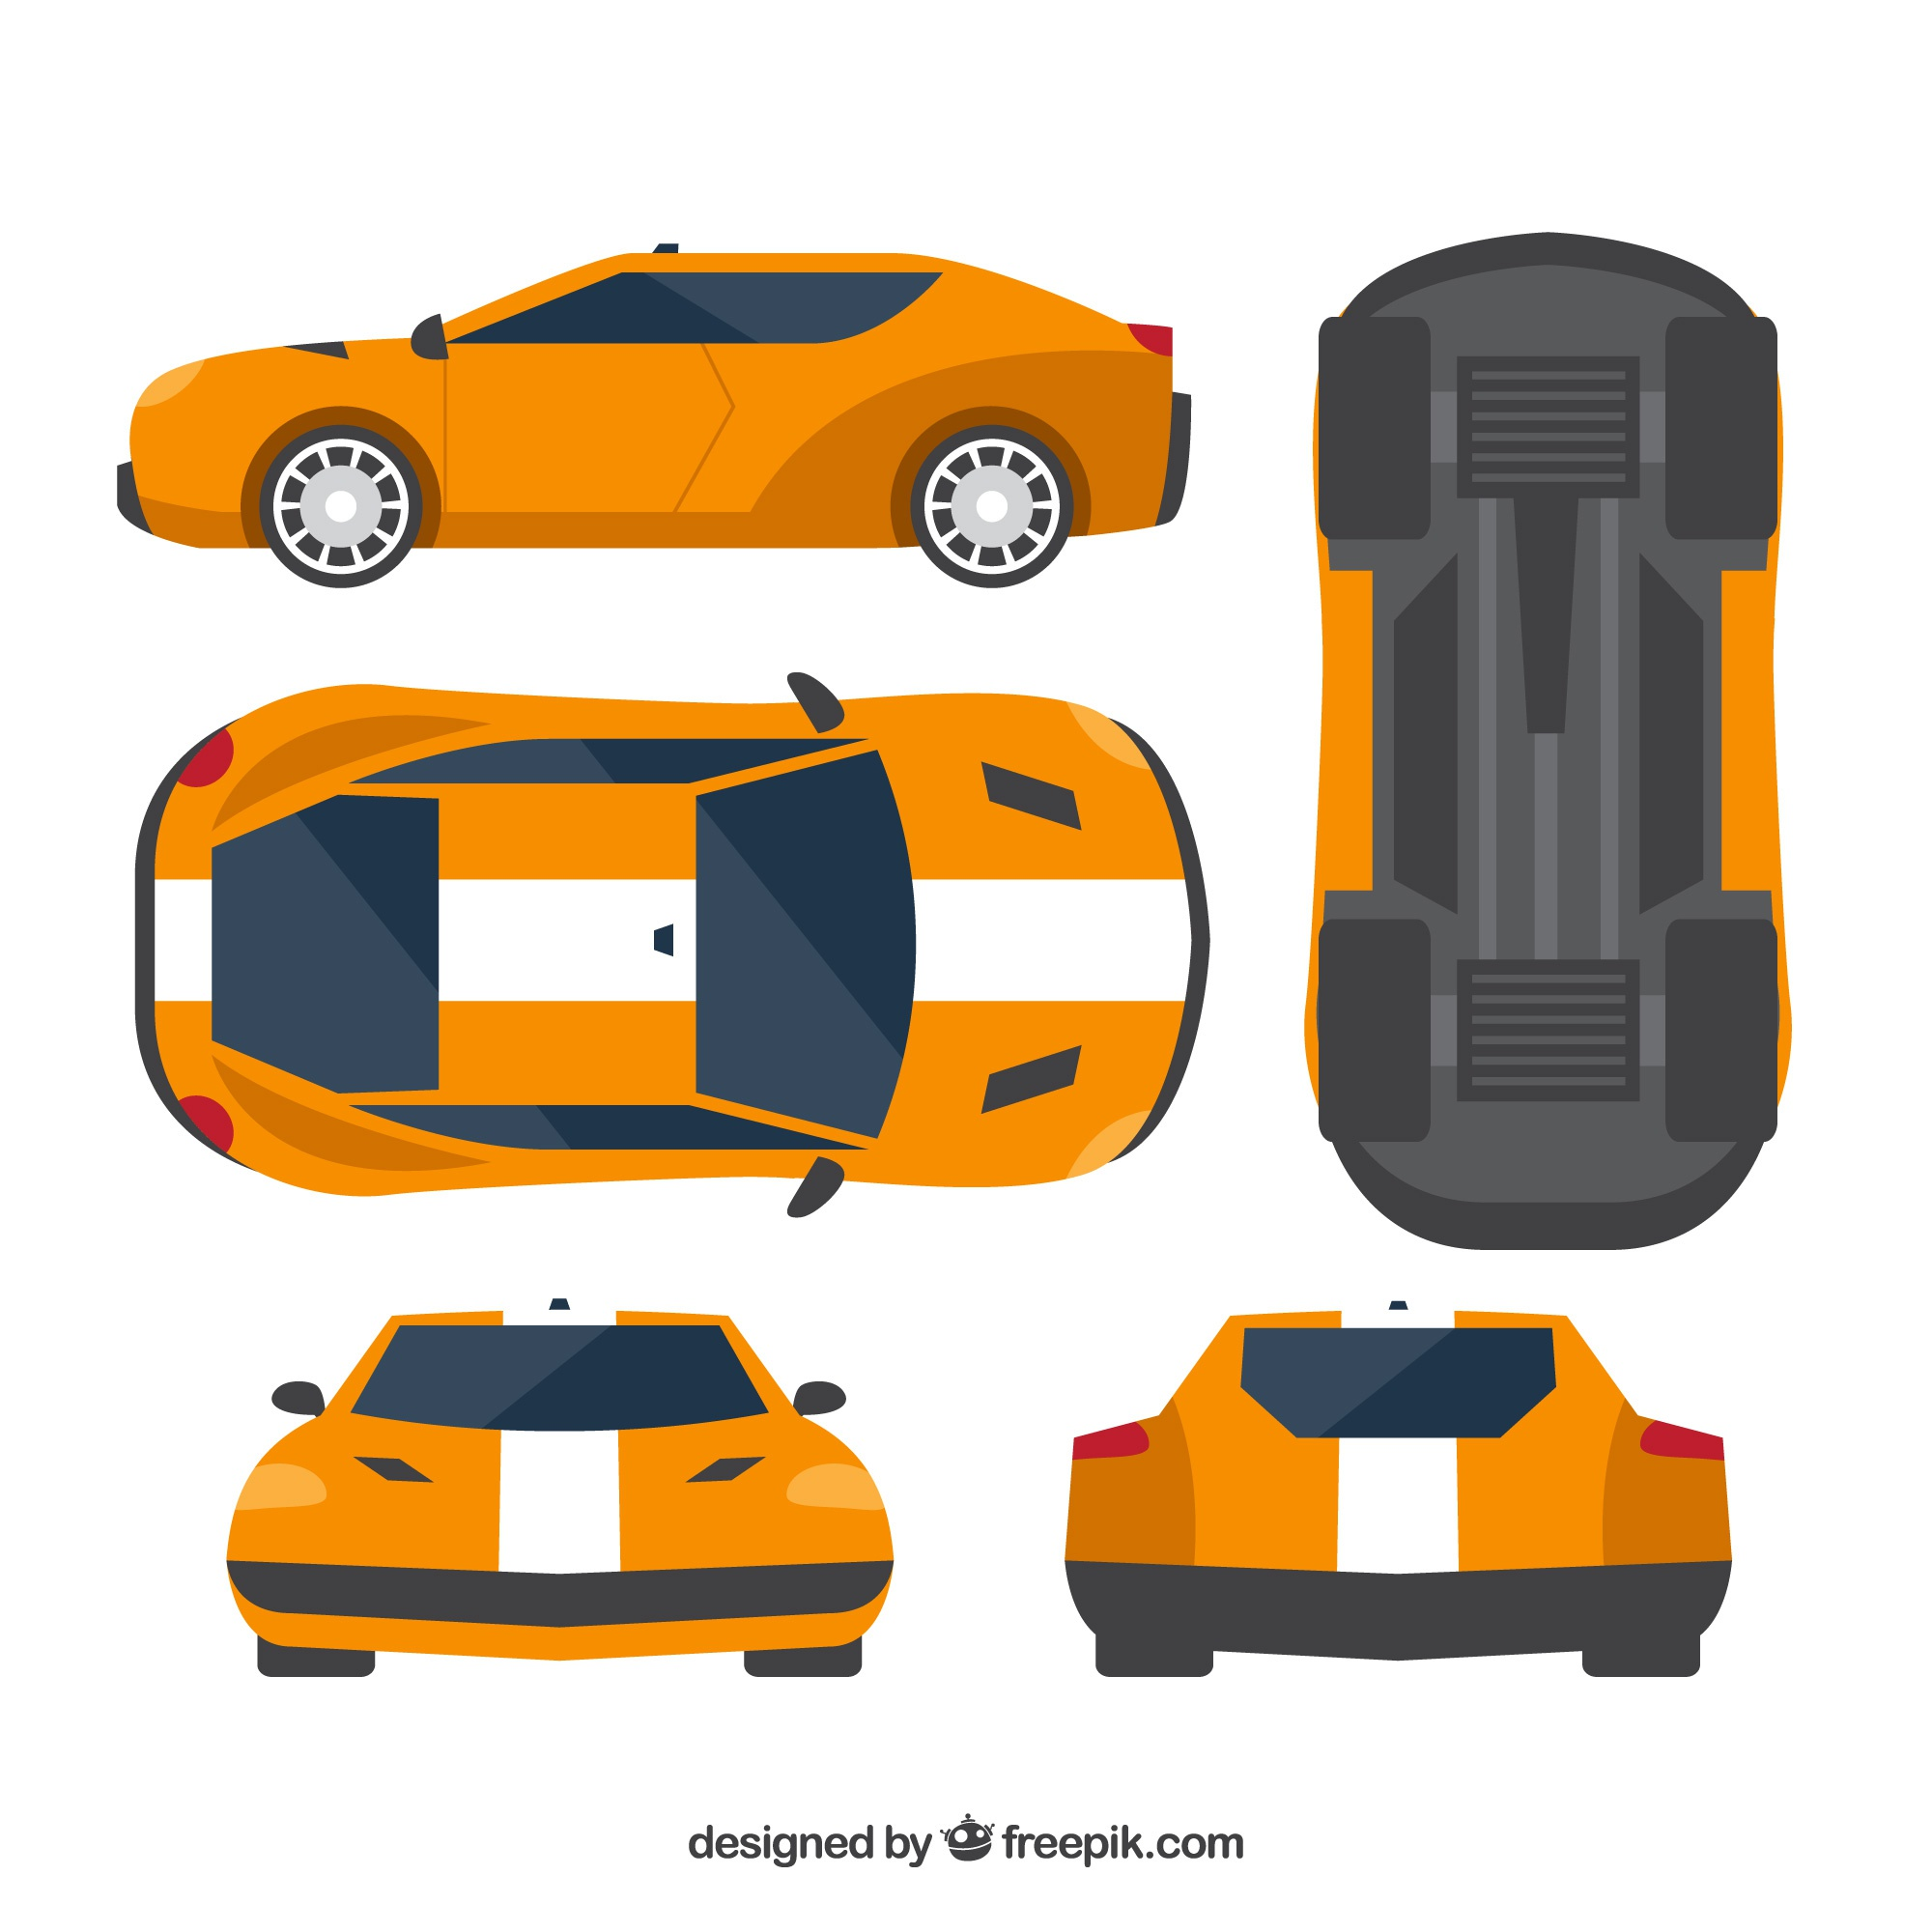 Variety of views of race car